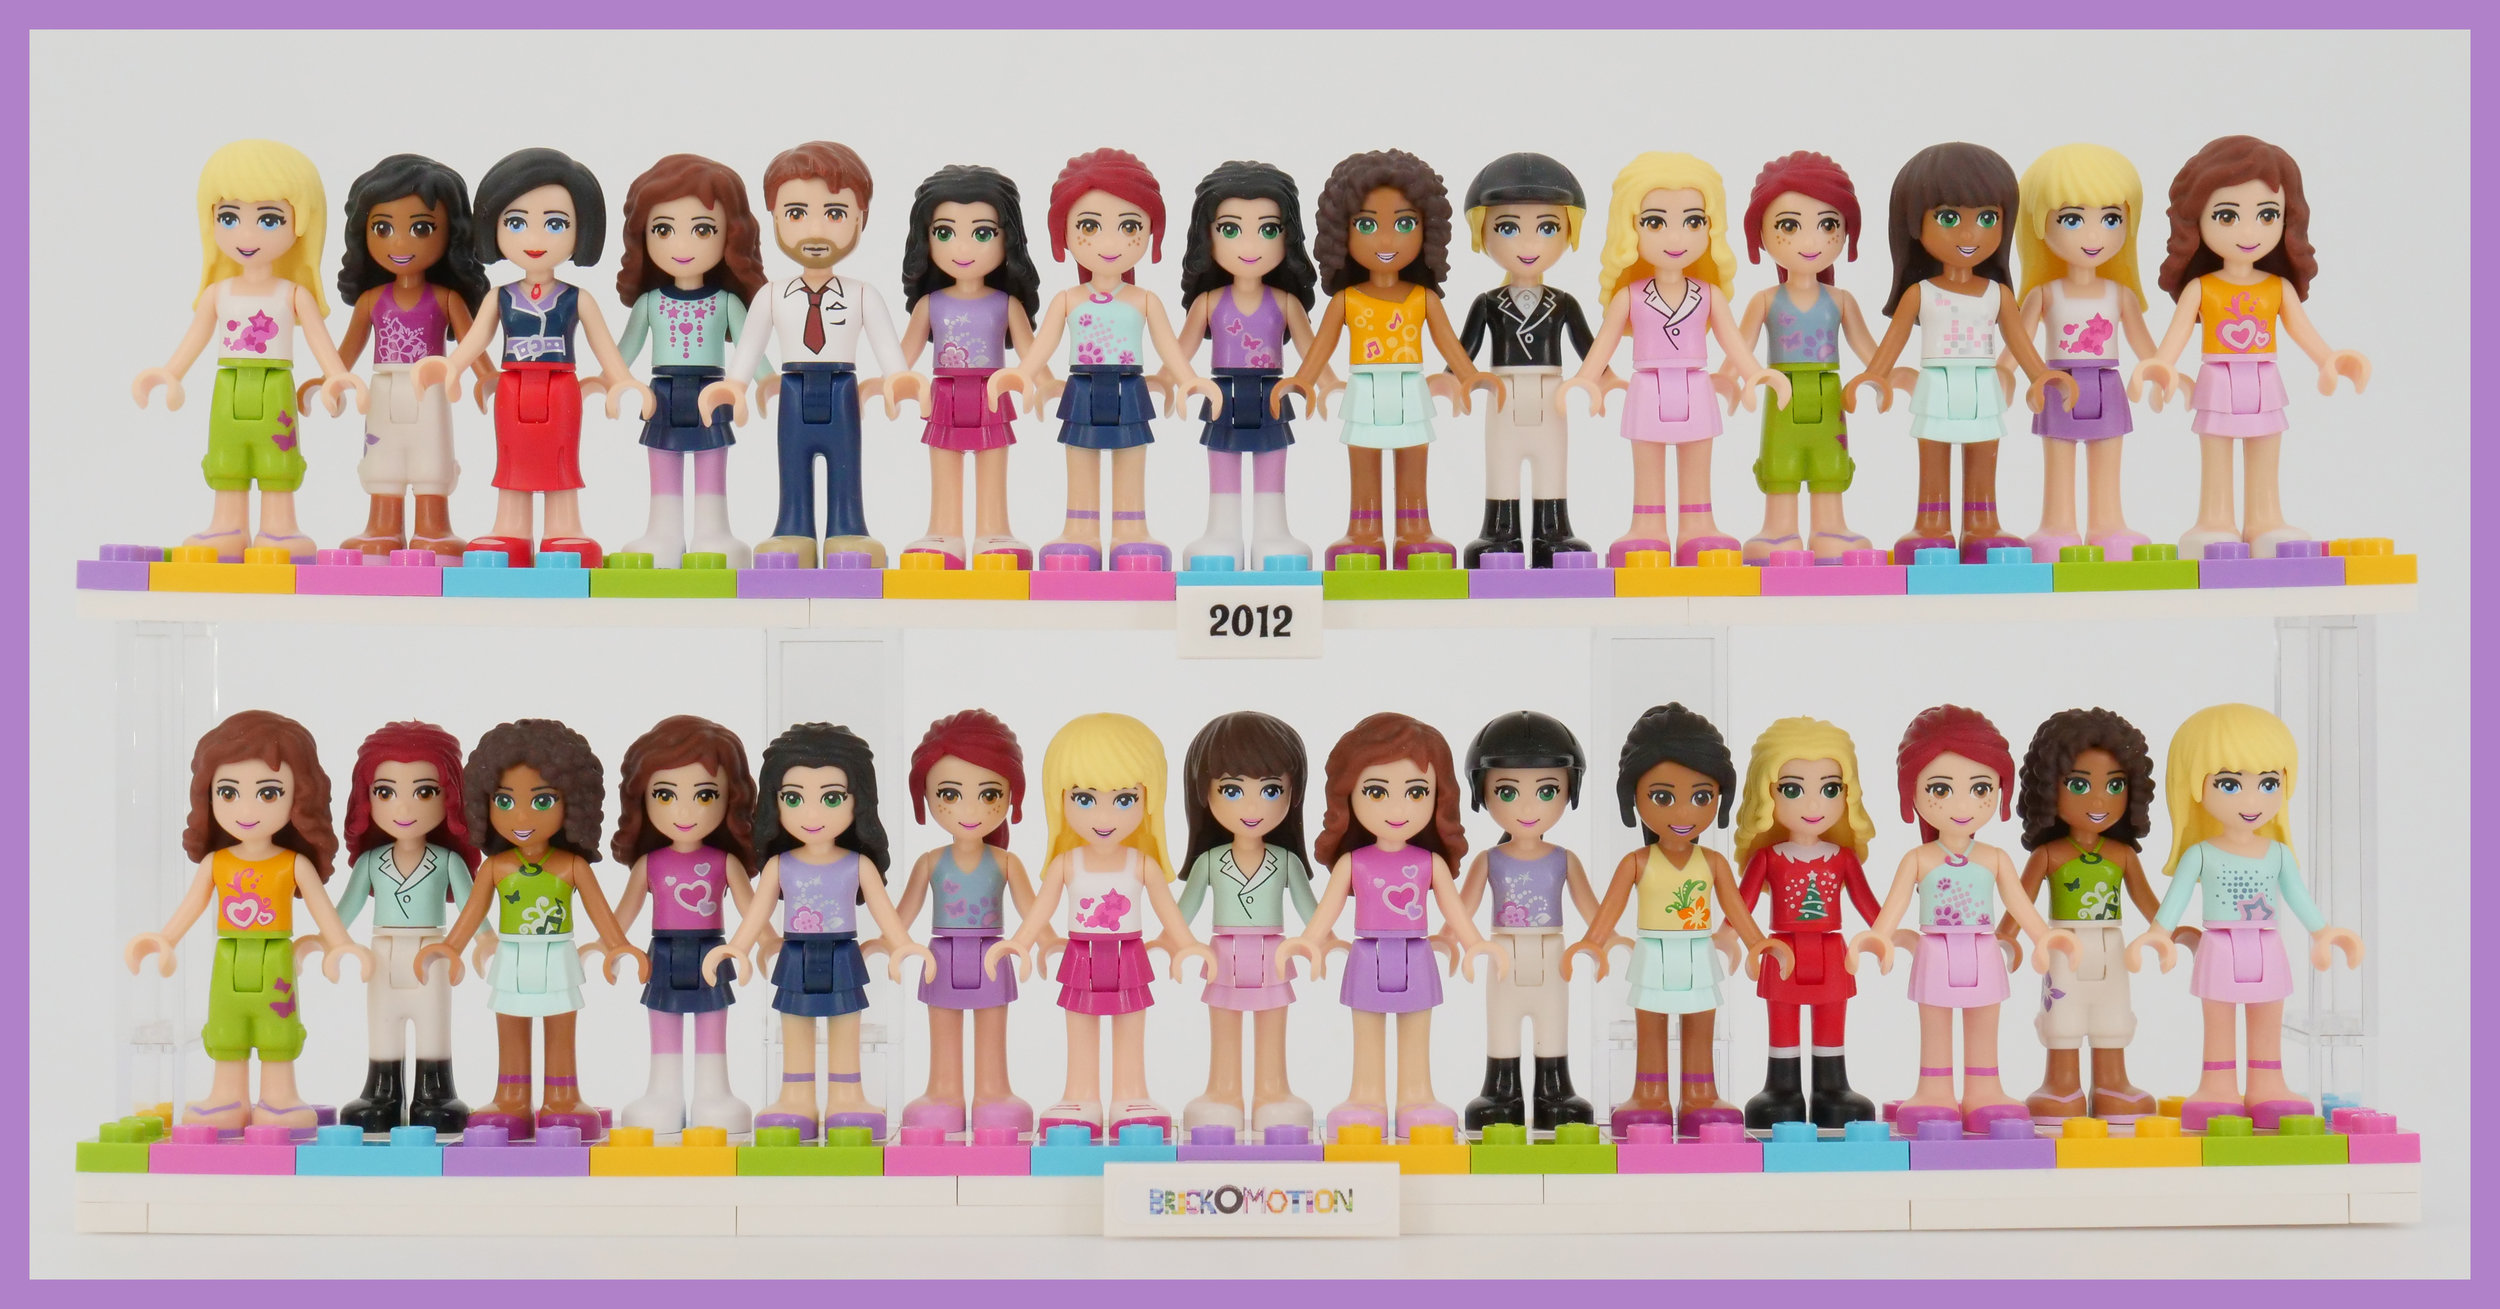 All of the 2012 LEGO Friends minidolls